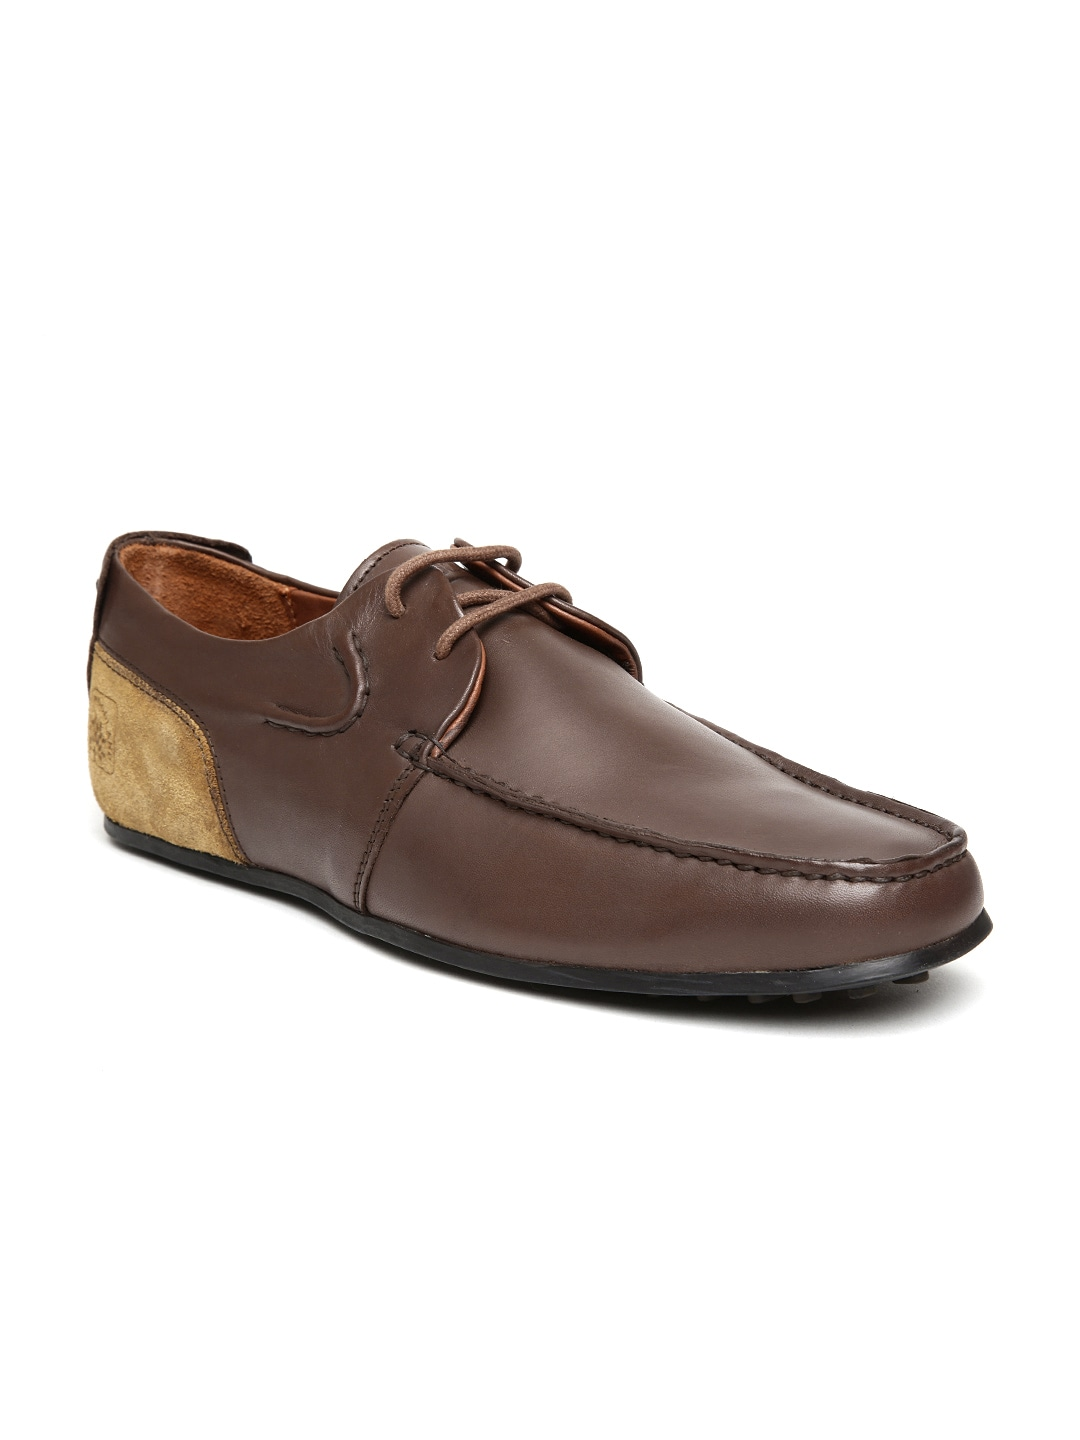 Woodland Shoes - Buy Genuine Woodland Shoes Online At Best Price - Myntra 4d4f005eff5